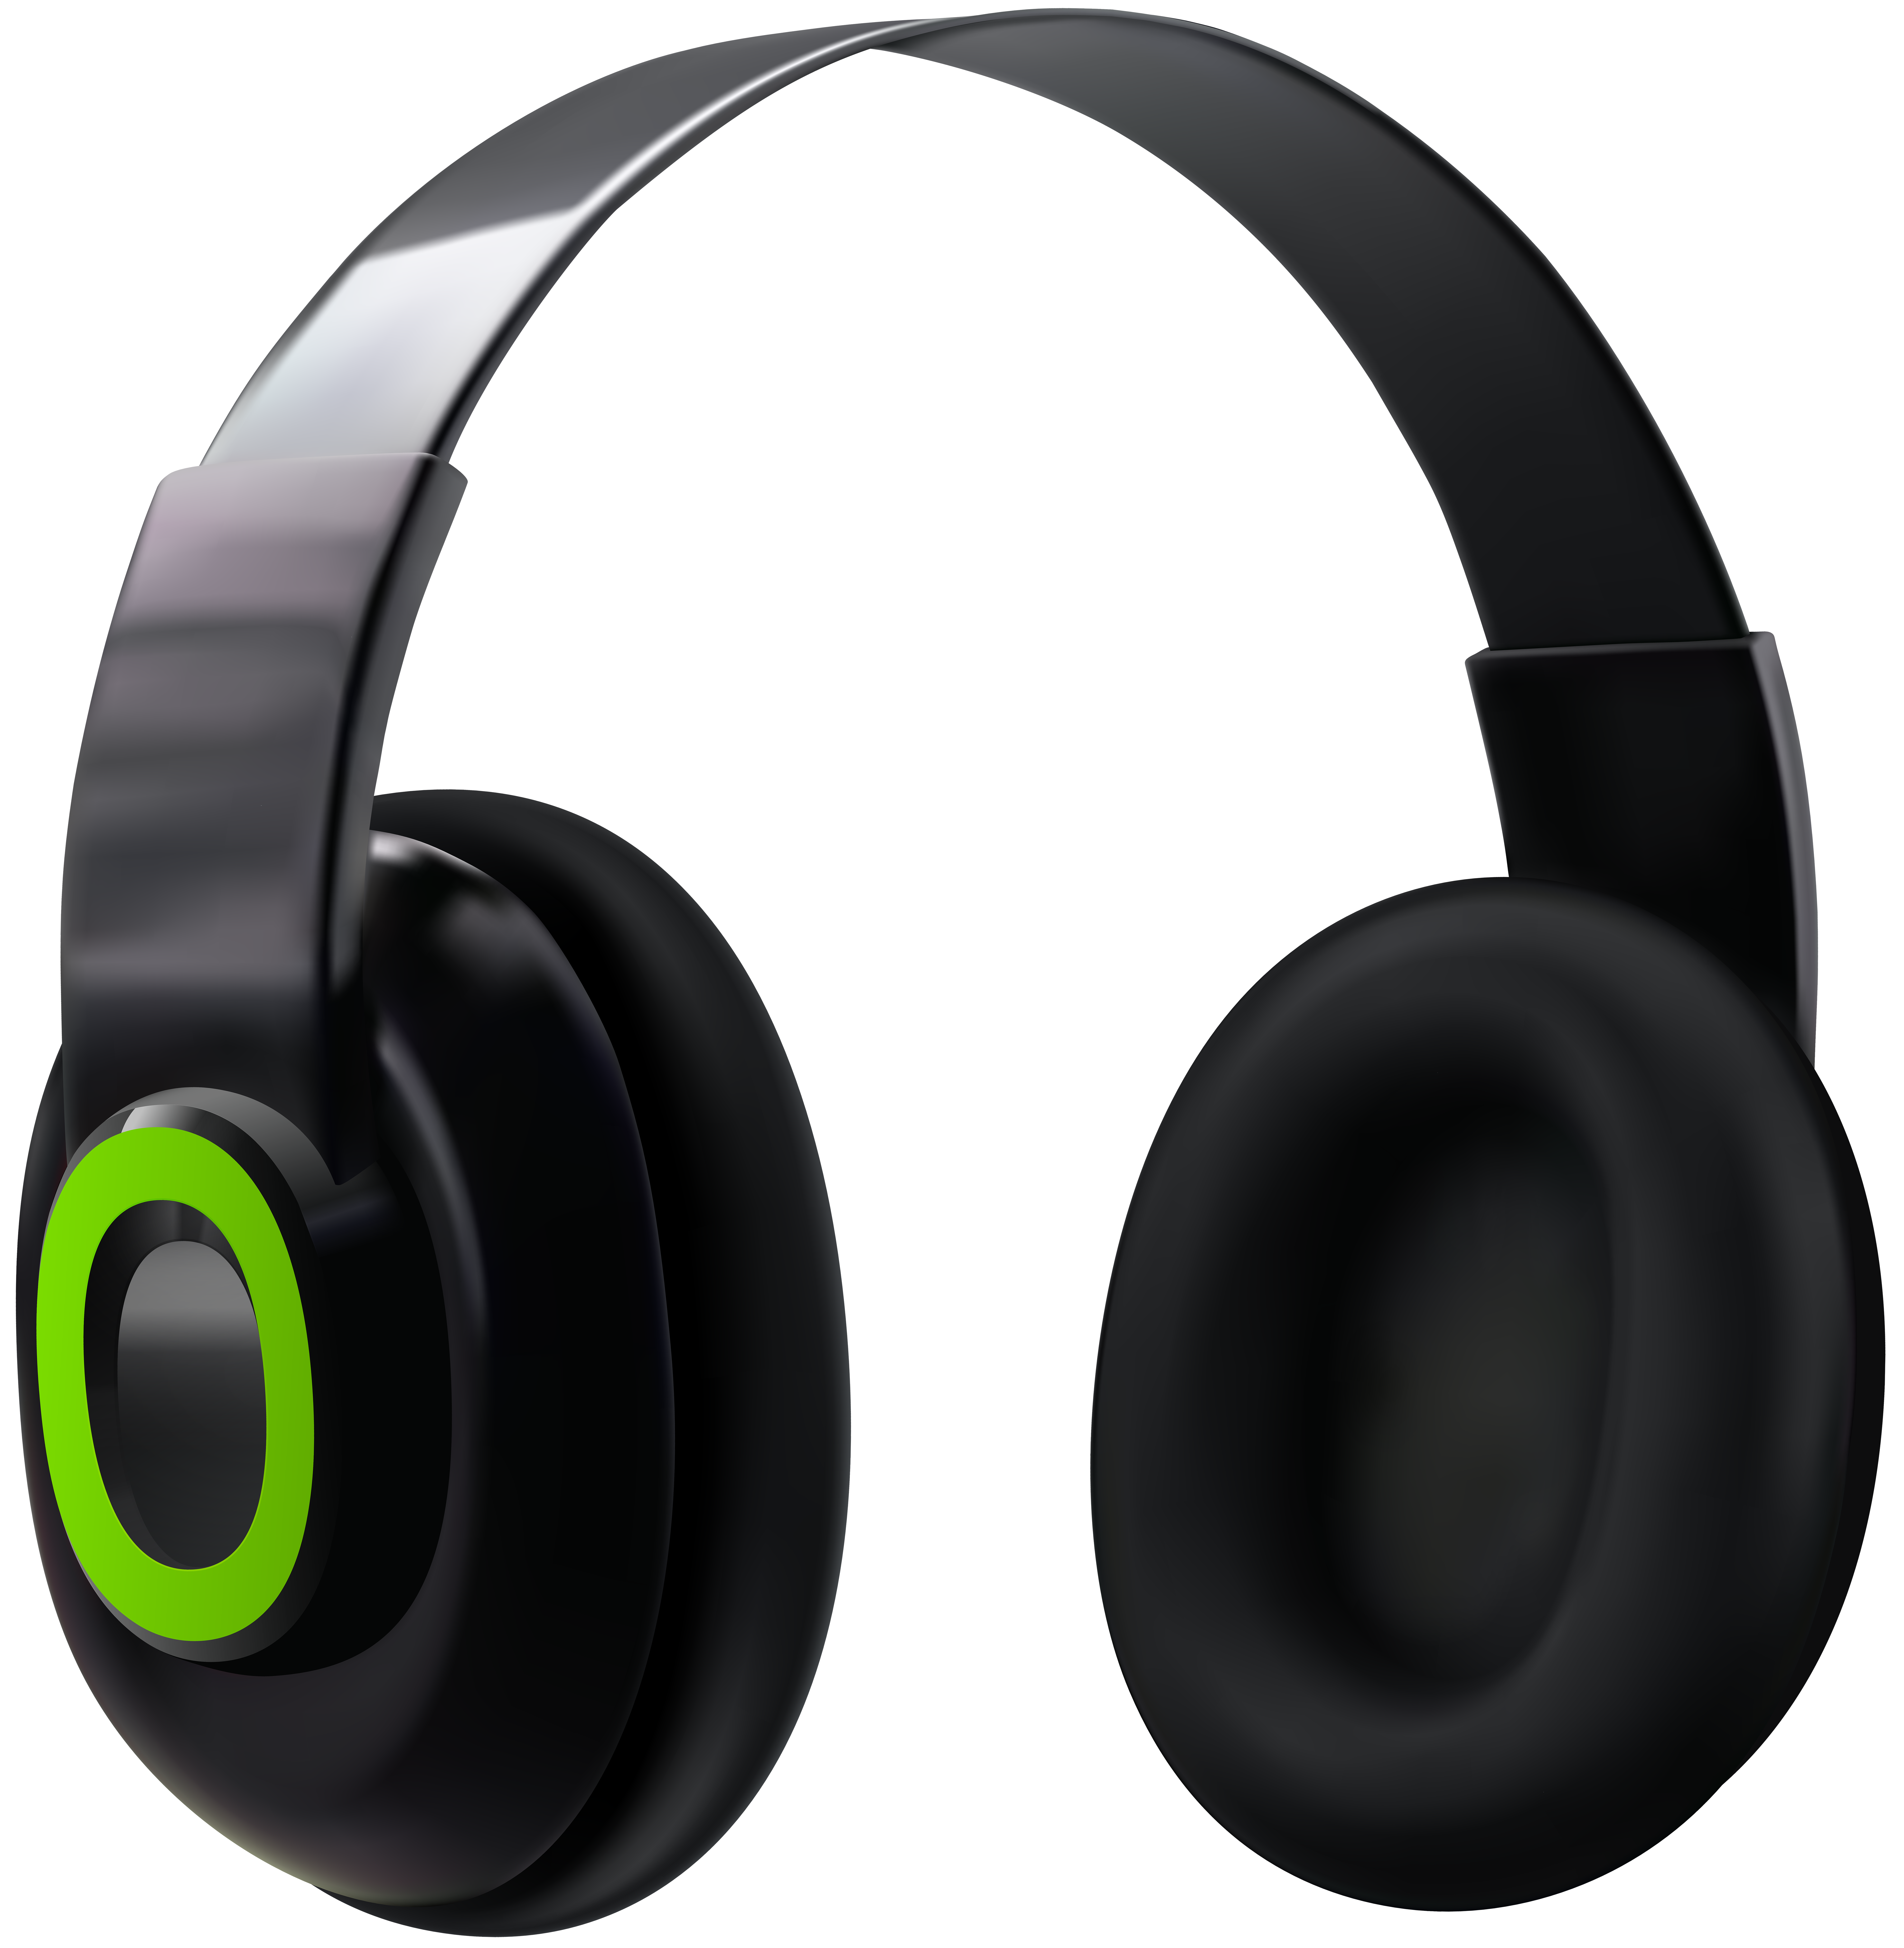 Music Headset PNG Clip Art Image.